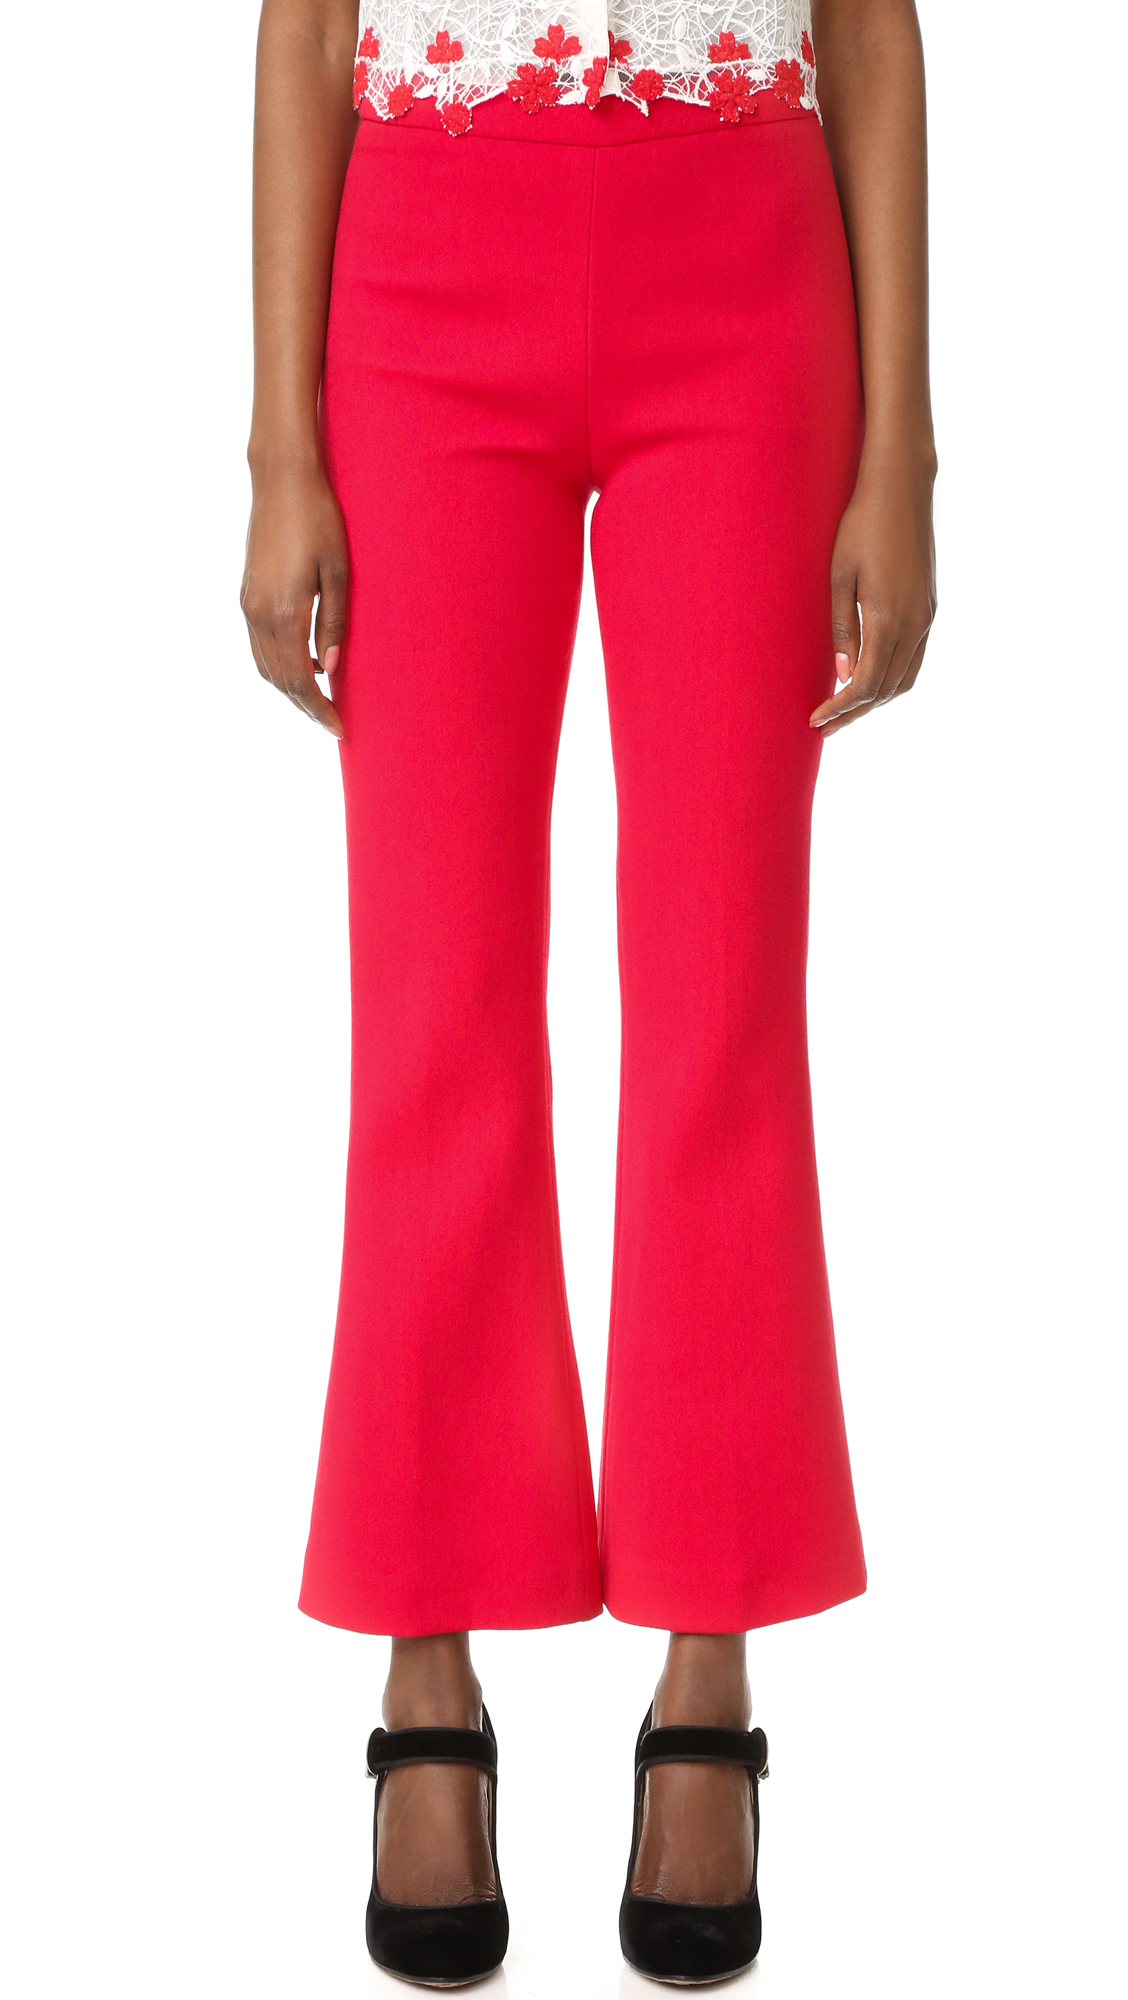 Giambattista Valli pants in a cropped, high waisted silhouette. The straight leg profile is slightly flared at the cuffs. Hidden back zip. Fabric: Mid weight crepe. 45% cotton/39% viscose/16% nylon. Dry clean. Made in Italy. Measurements Rise: 11